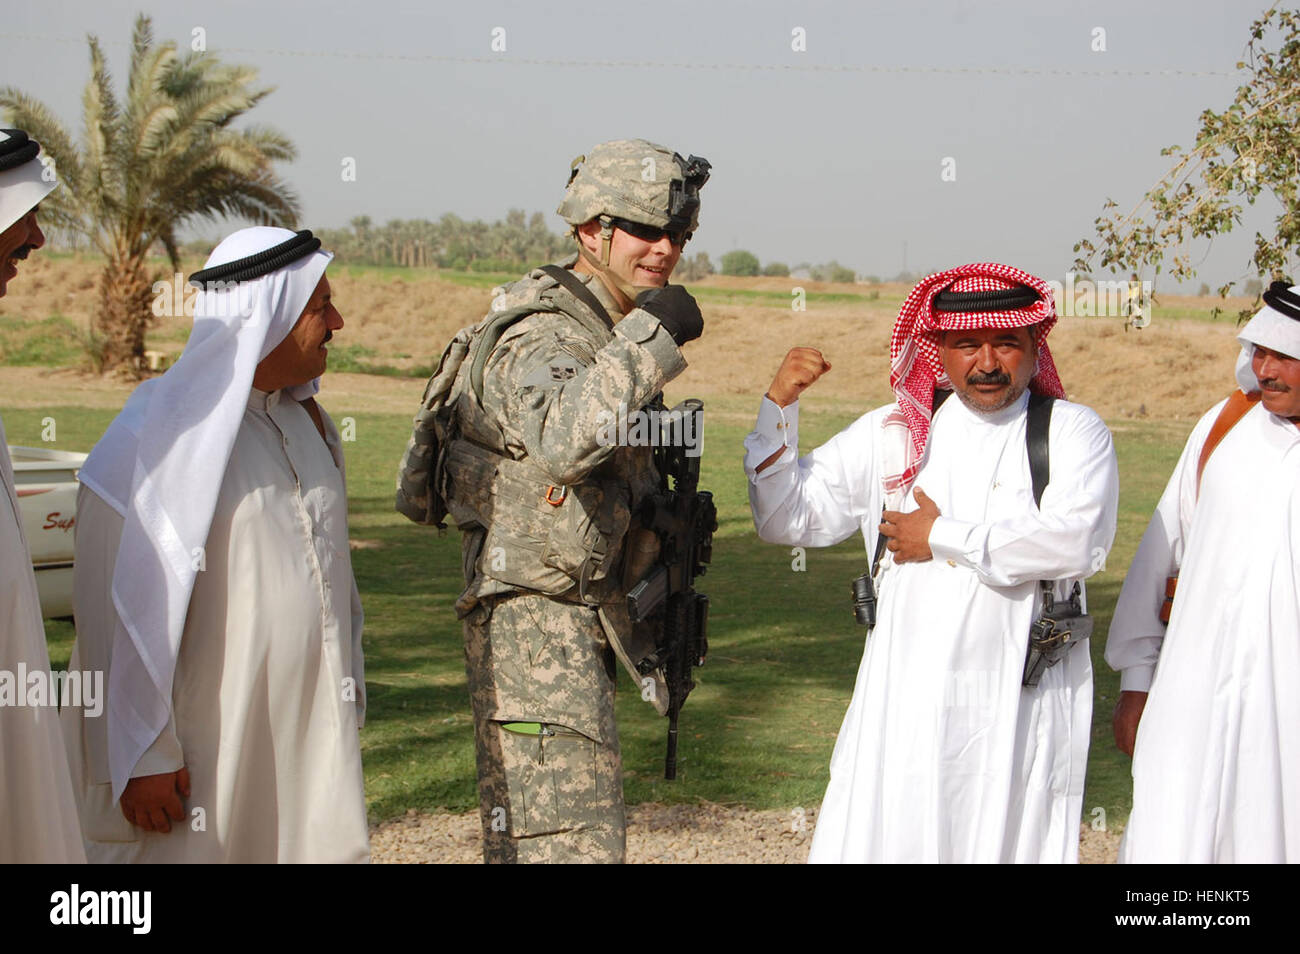 Capt. Brian Sweigart, a native of San Antonio, Texas compares his 'guns' with Iraqis in the Taji Qada, northwest - Stock Image